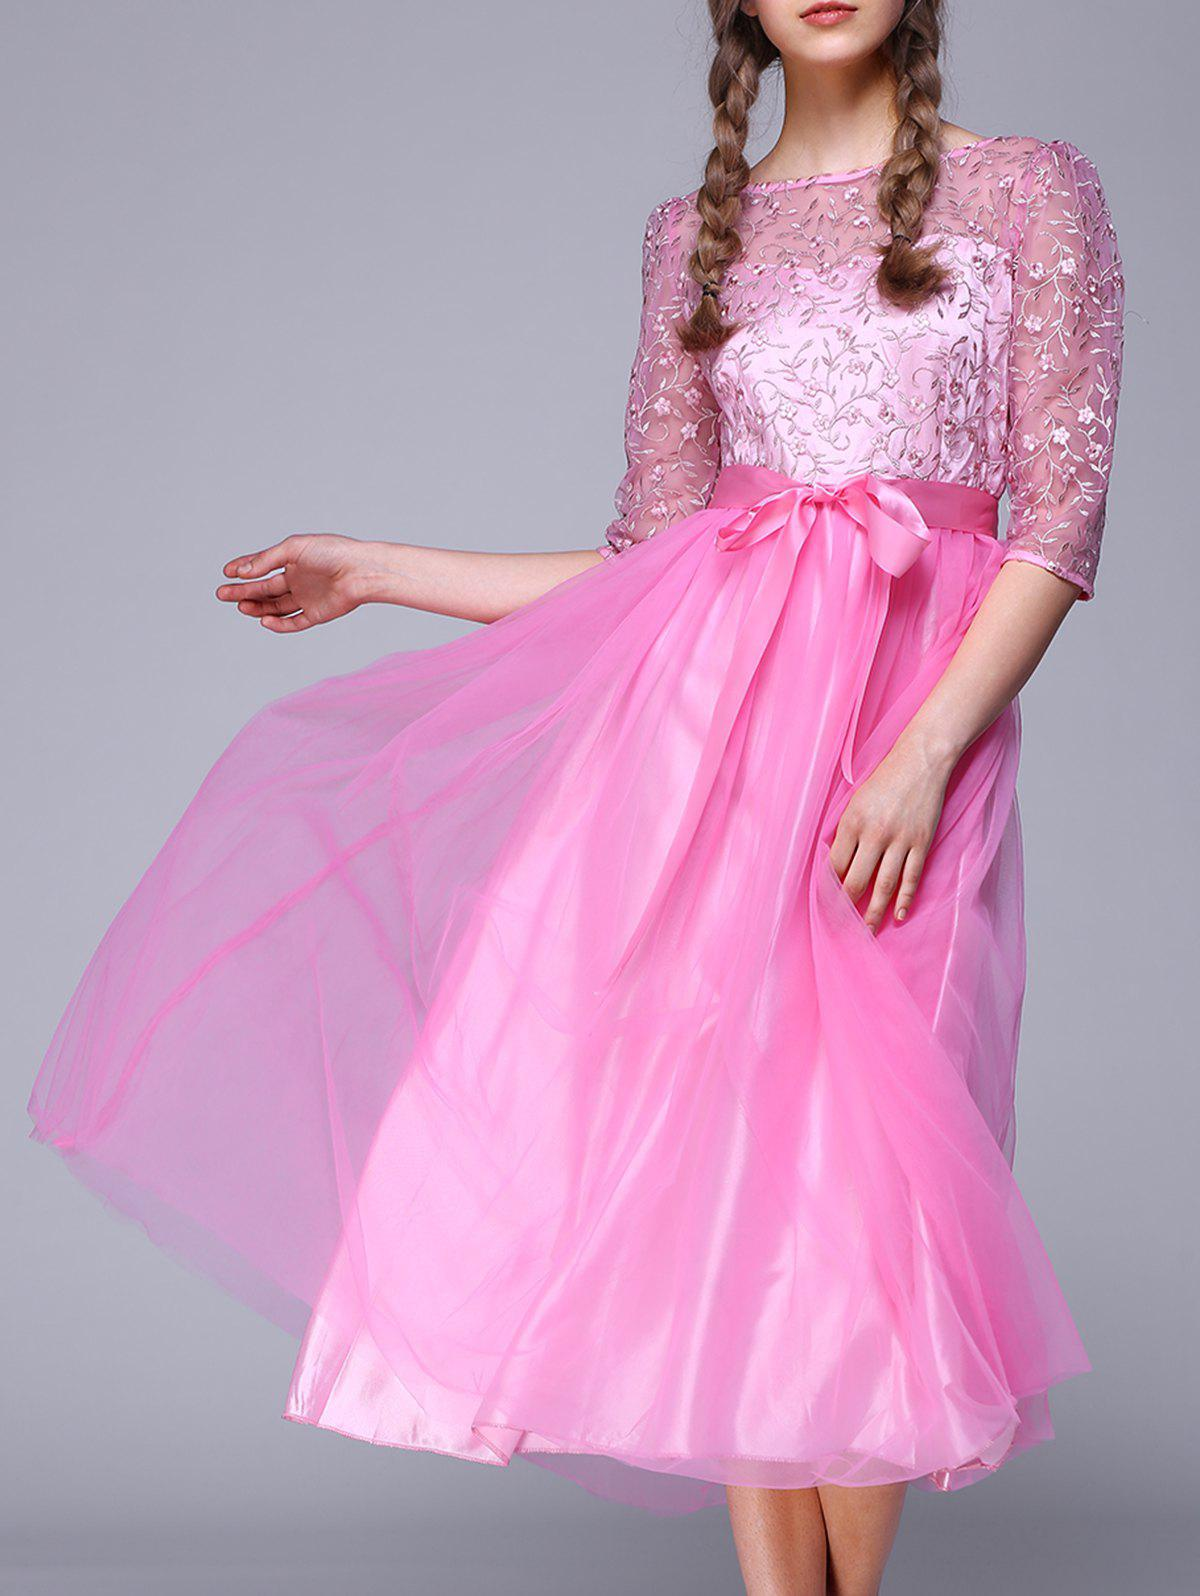 1/2 Sleeve See-Through Lace Splicing Embroidery Dress - PINK 2XL